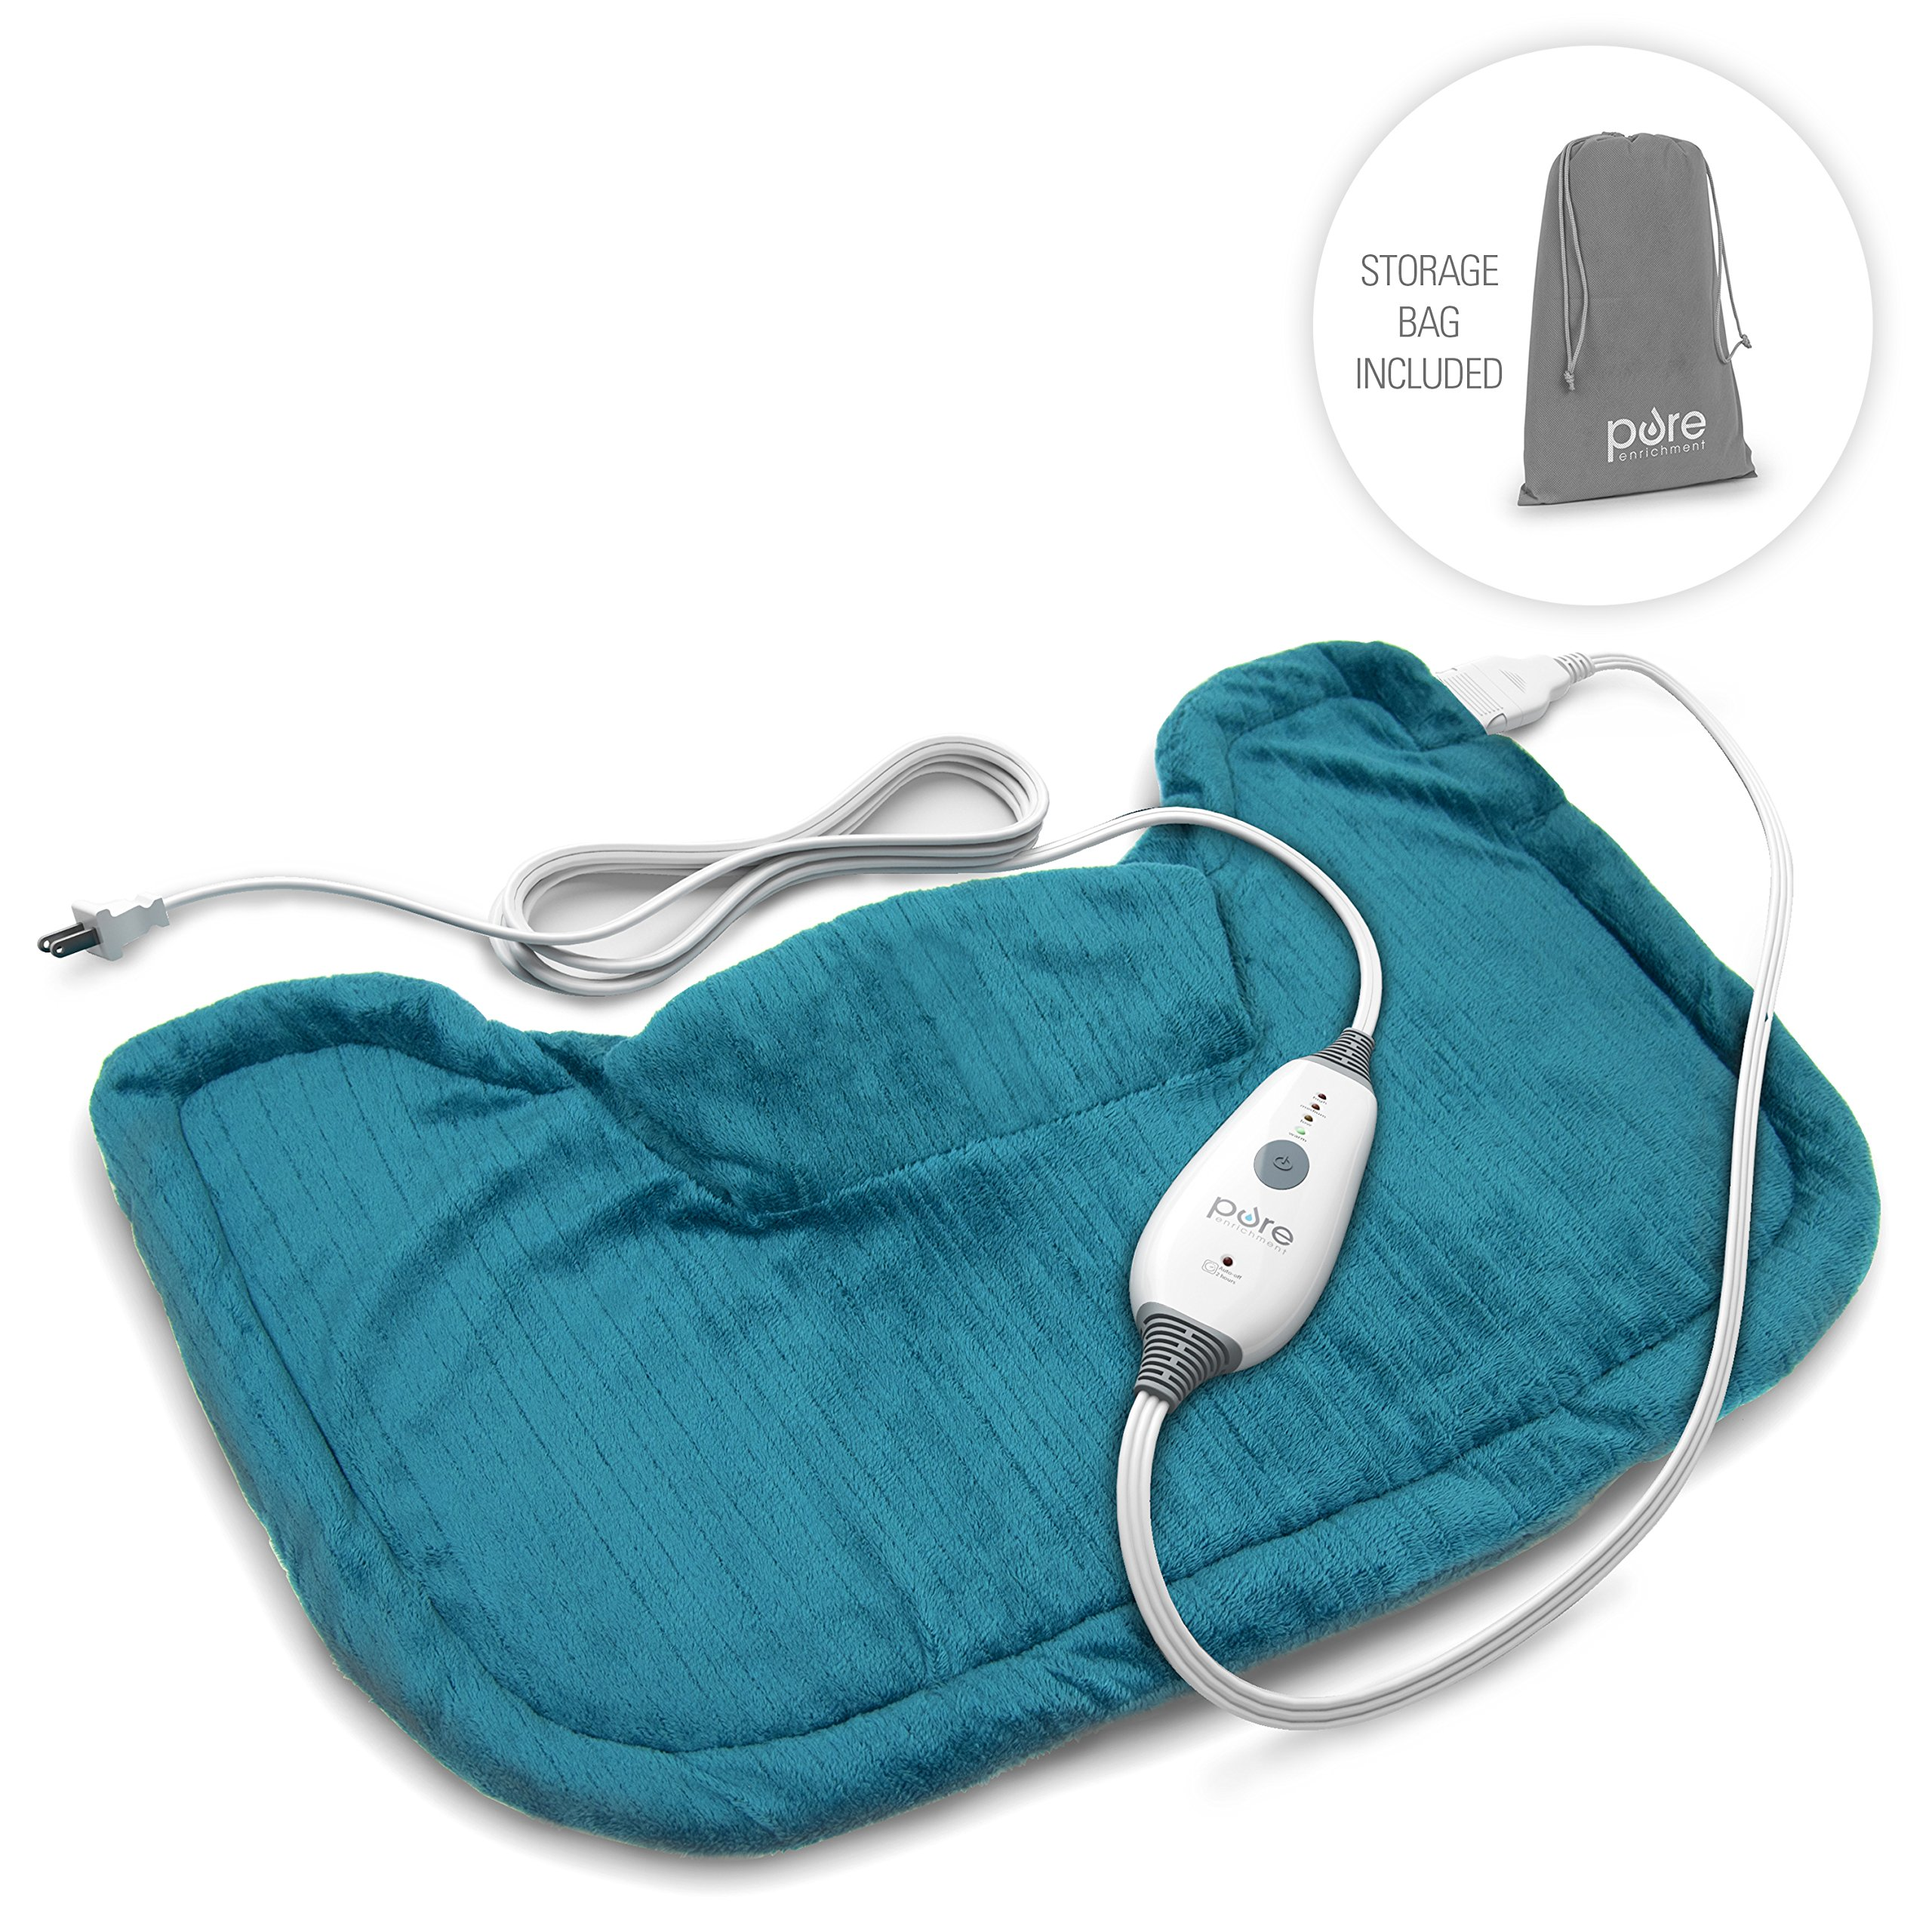 PureRelief Neck & Shoulder Heating Pad with Fast-Heating Technology, Magnetic Closure & Convenient Storage Bag - Turquoise Blue